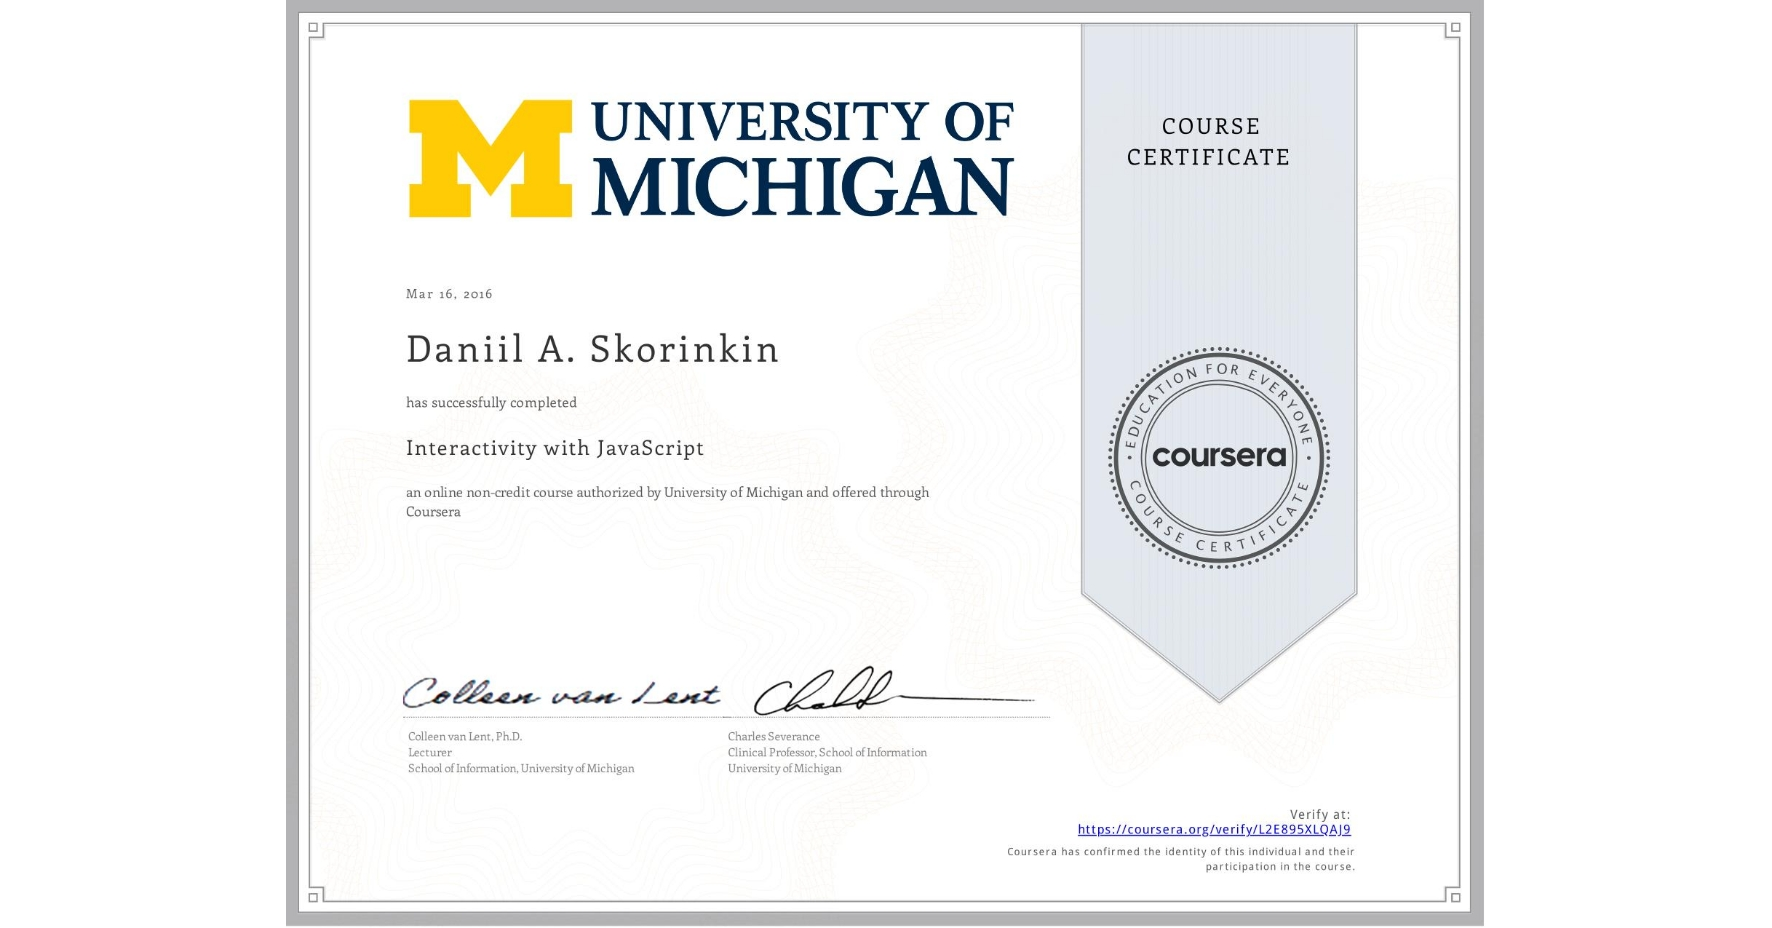 View certificate for Daniil A. Skorinkin, Interactivity with JavaScript, an online non-credit course authorized by University of Michigan and offered through Coursera